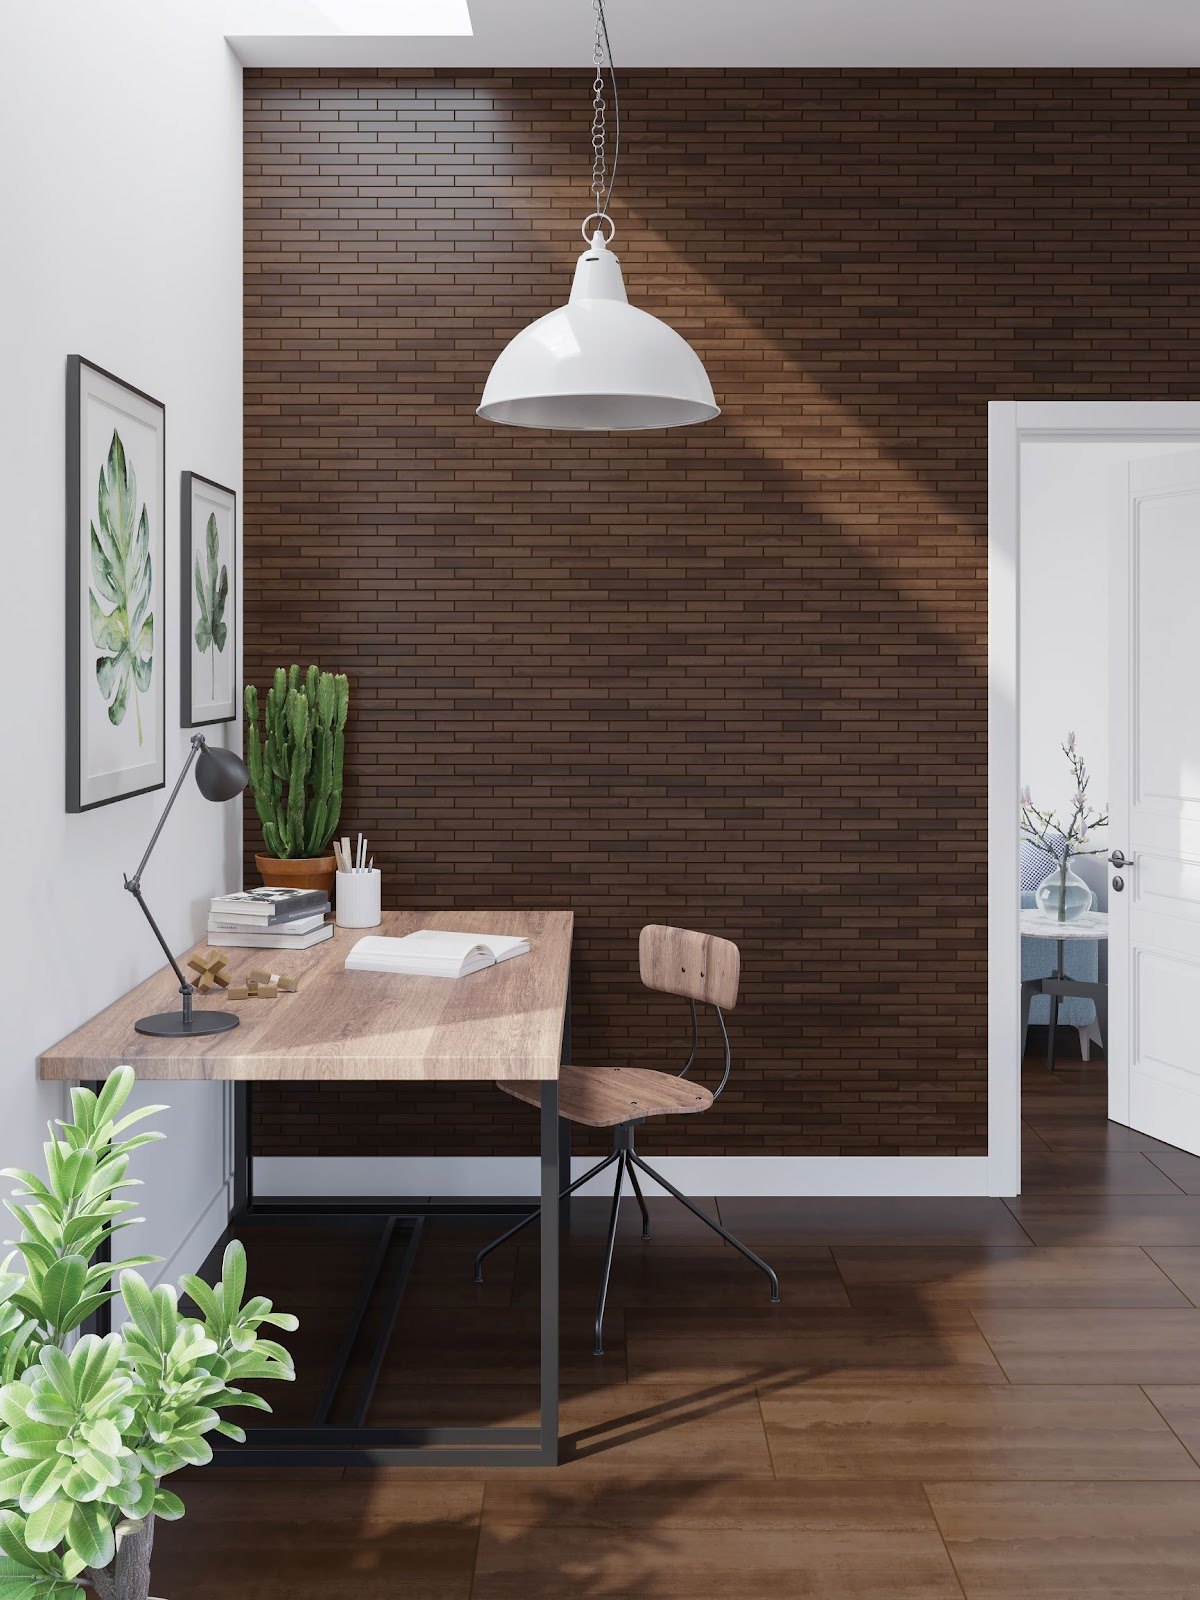 Wood-look tile flooring and wall tile in an office area